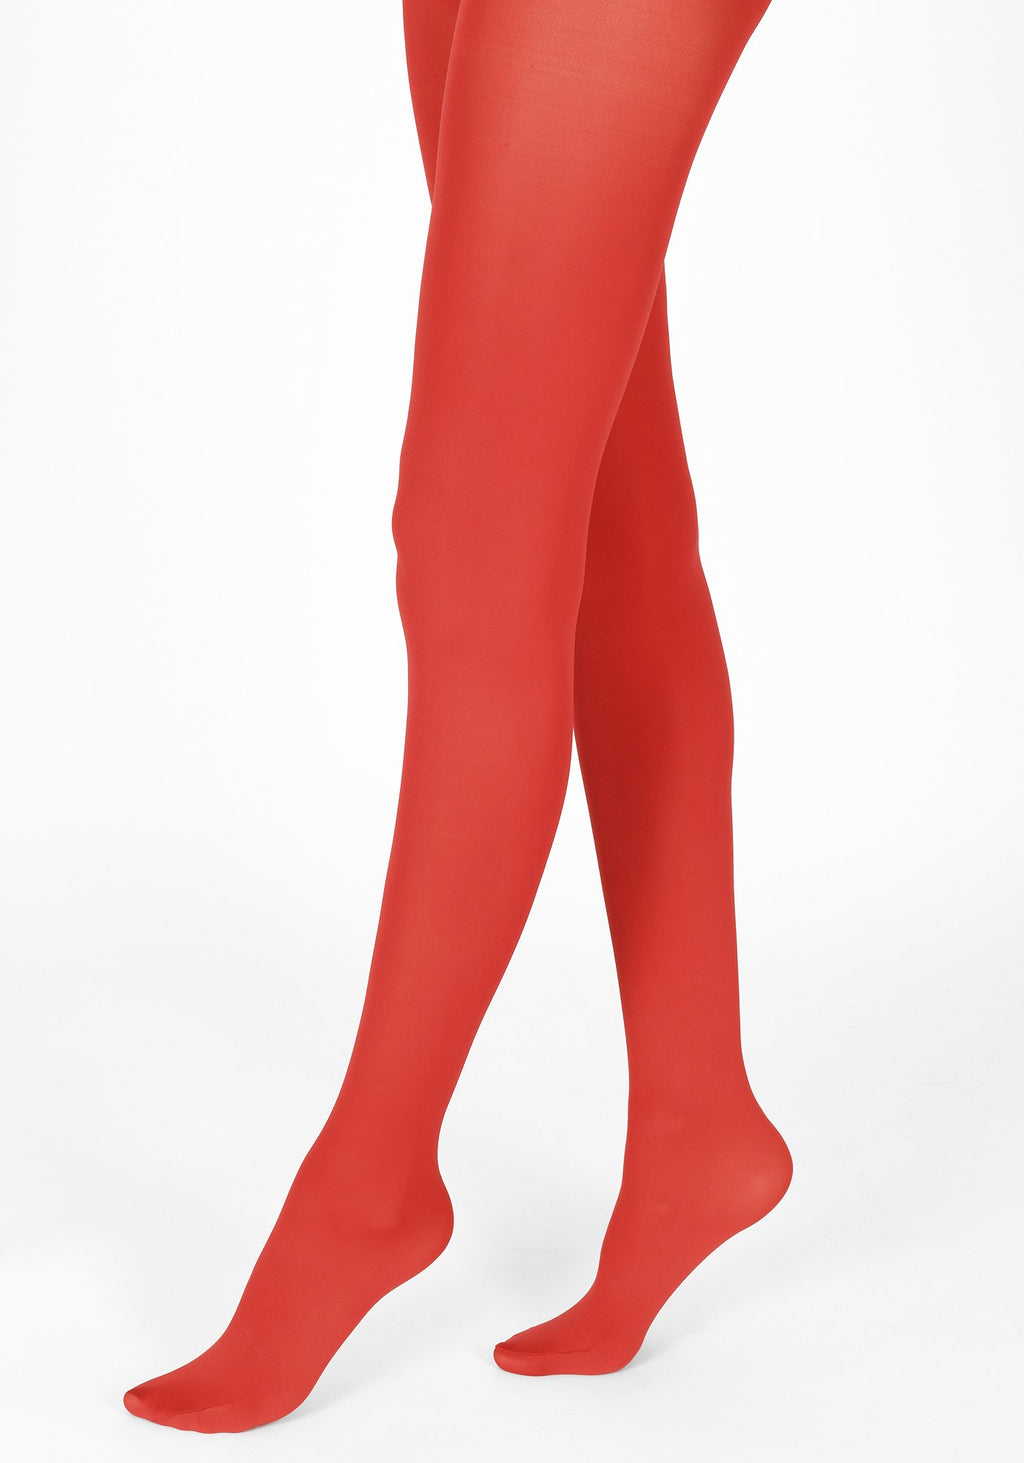 poppy red tights 60 denier 1